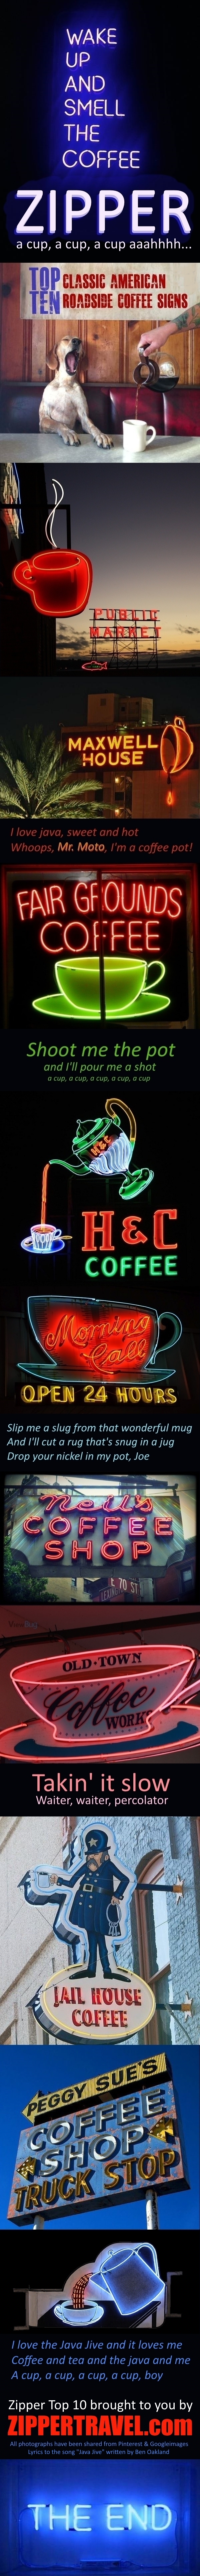 Zippertravel's top 10 cofffee signs across America selected from images shared on Pinterest